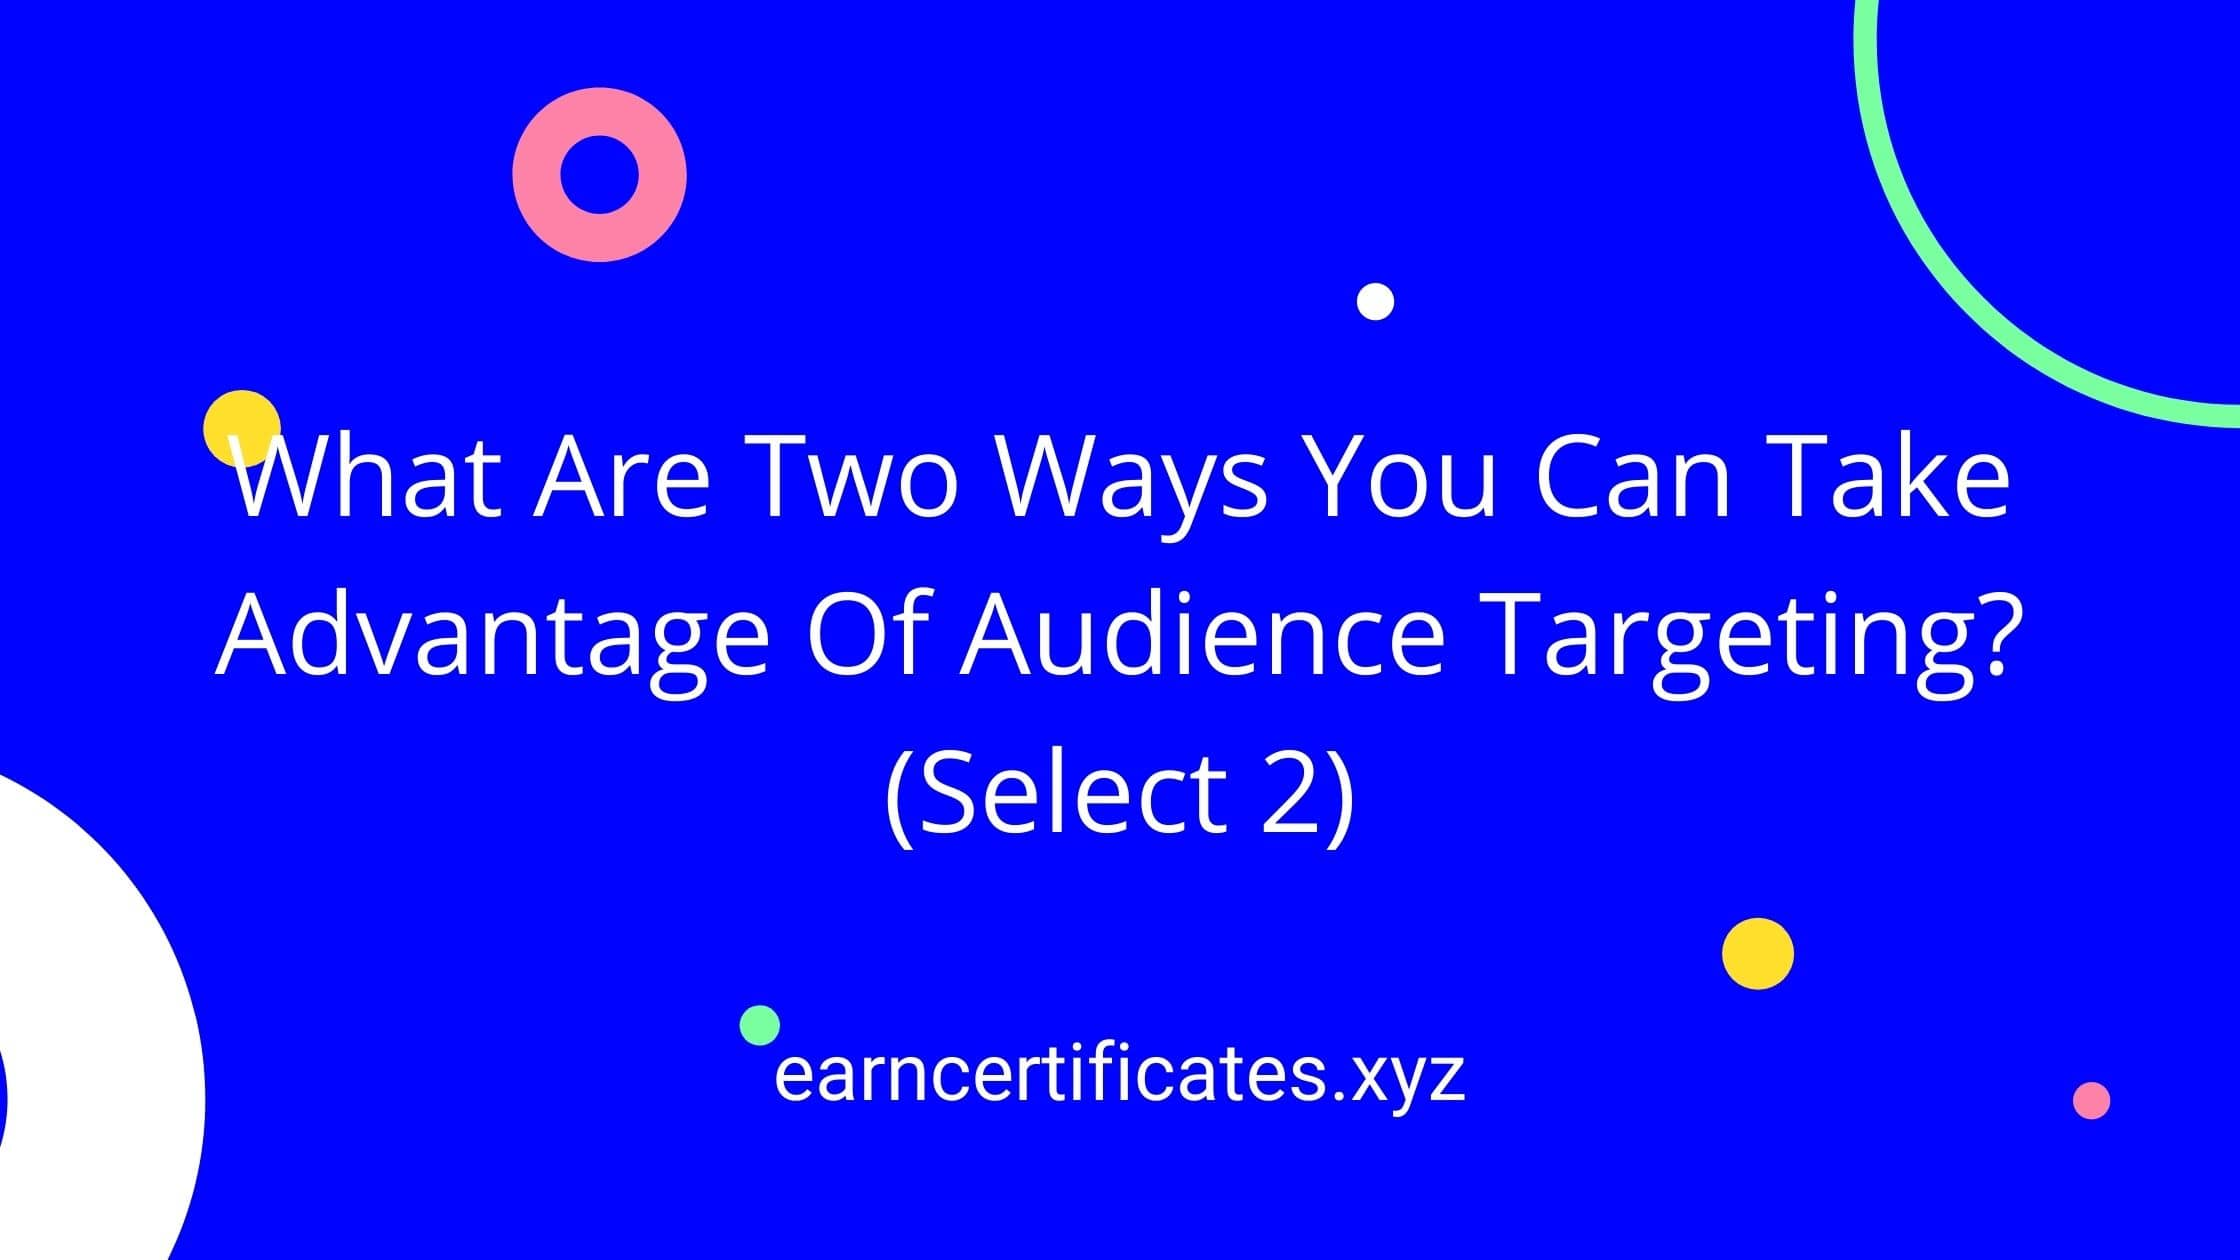 What Are Two Ways You Can Take Advantage Of Audience Targeting? (Select 2)